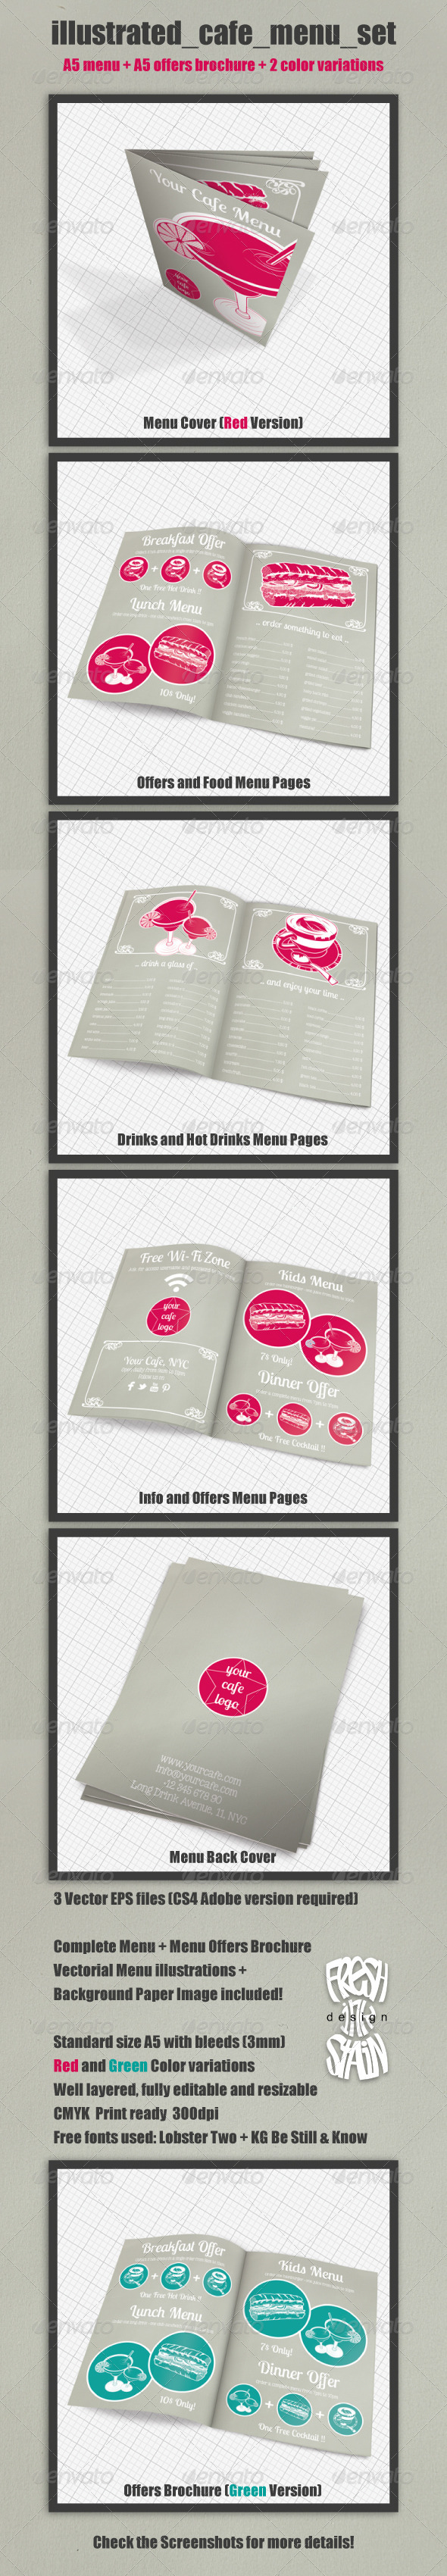 GraphicRiver Illustrated Cafe Menu Set 3371234